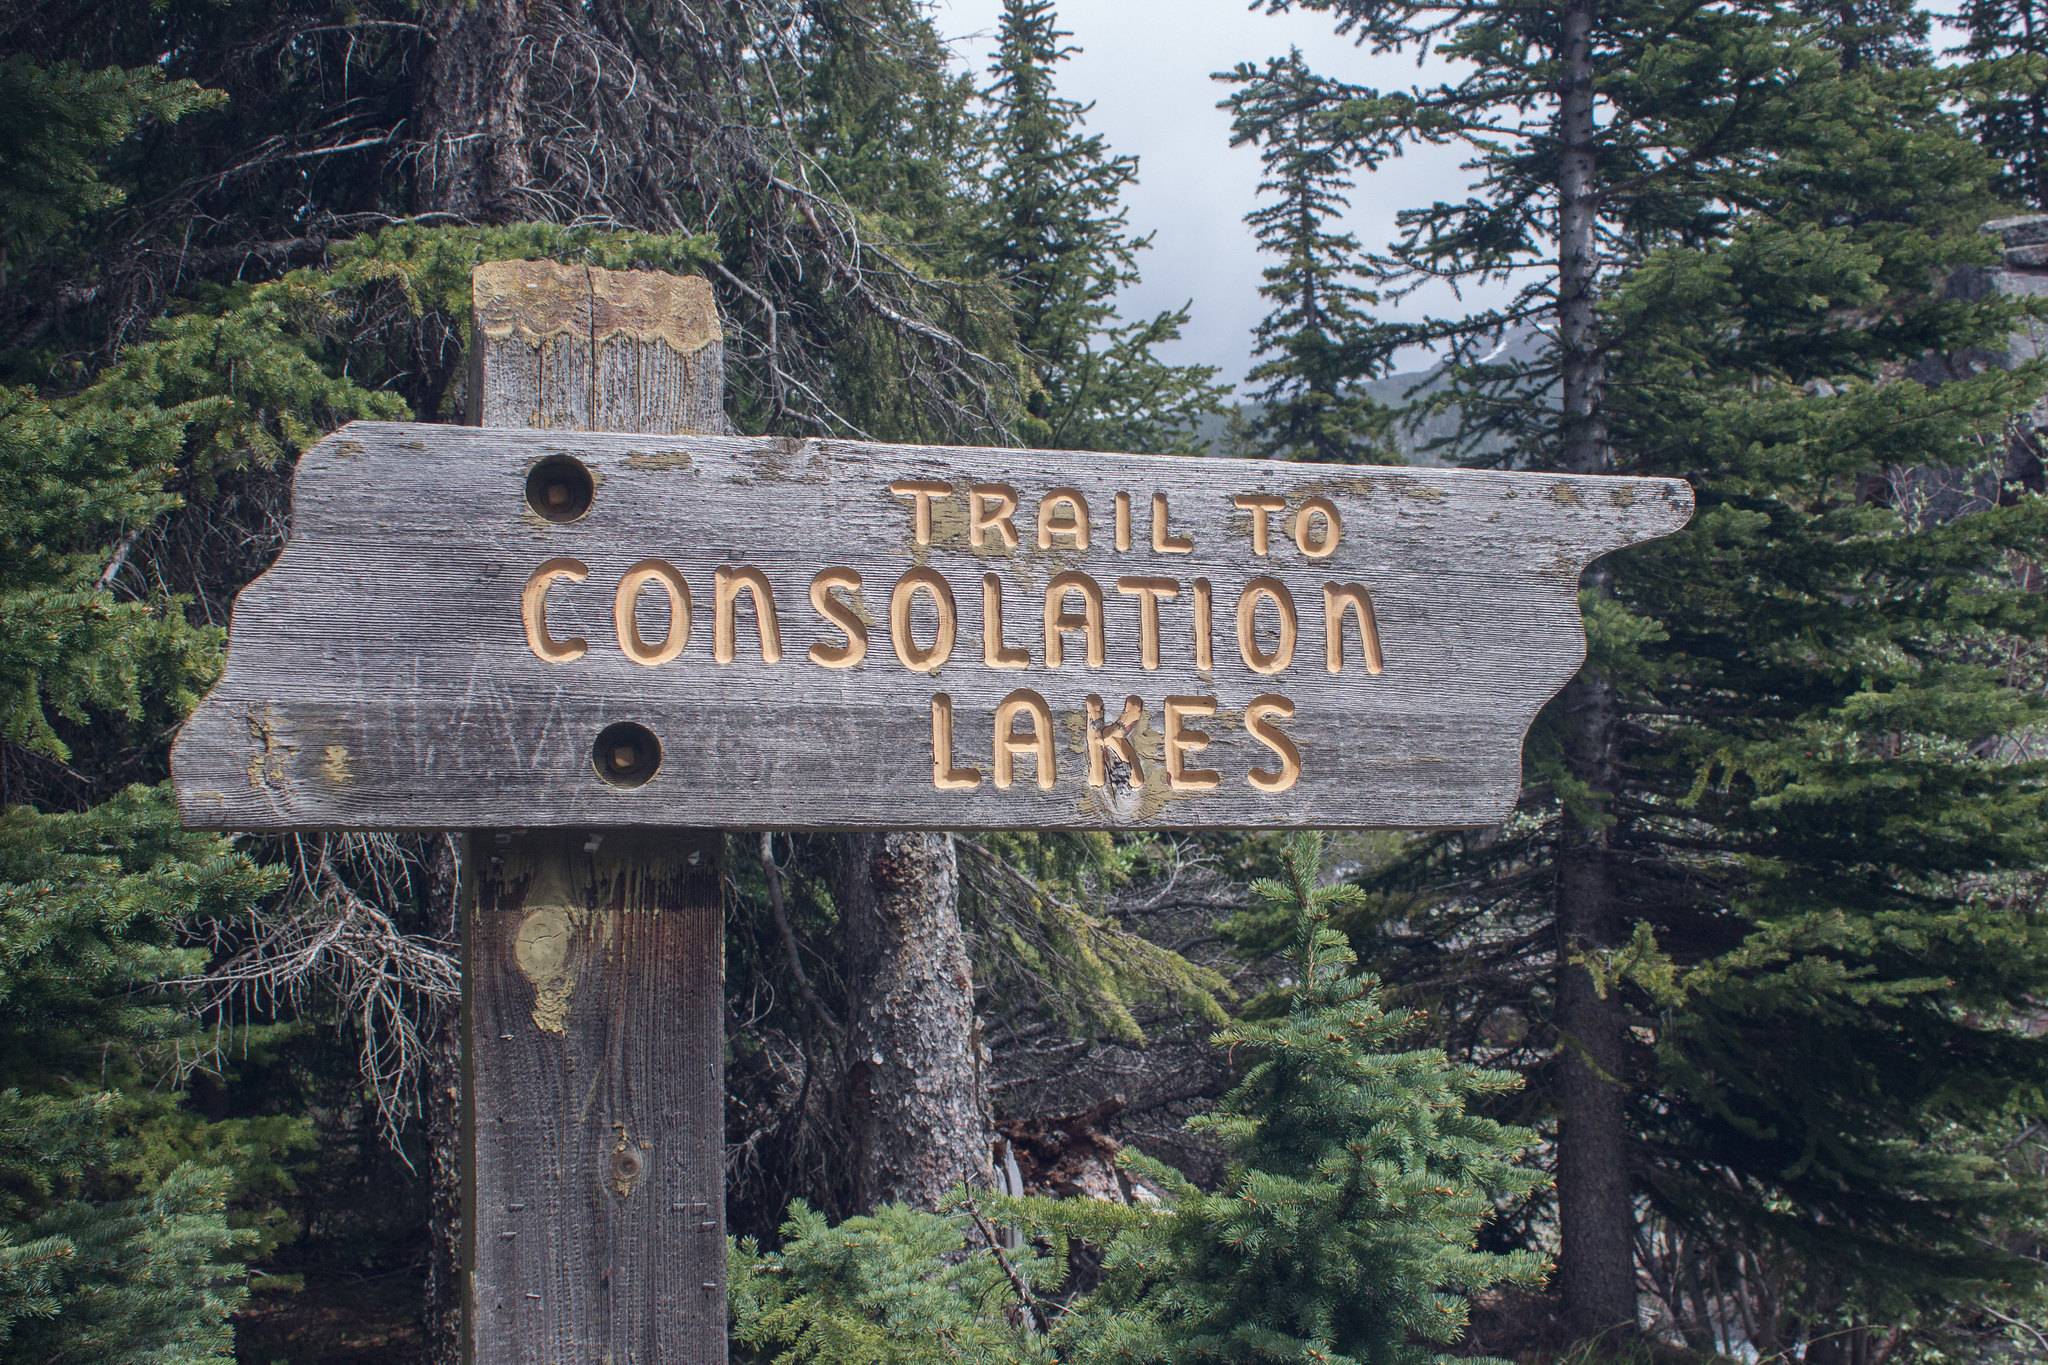 Sign for Consolation Lakes trail